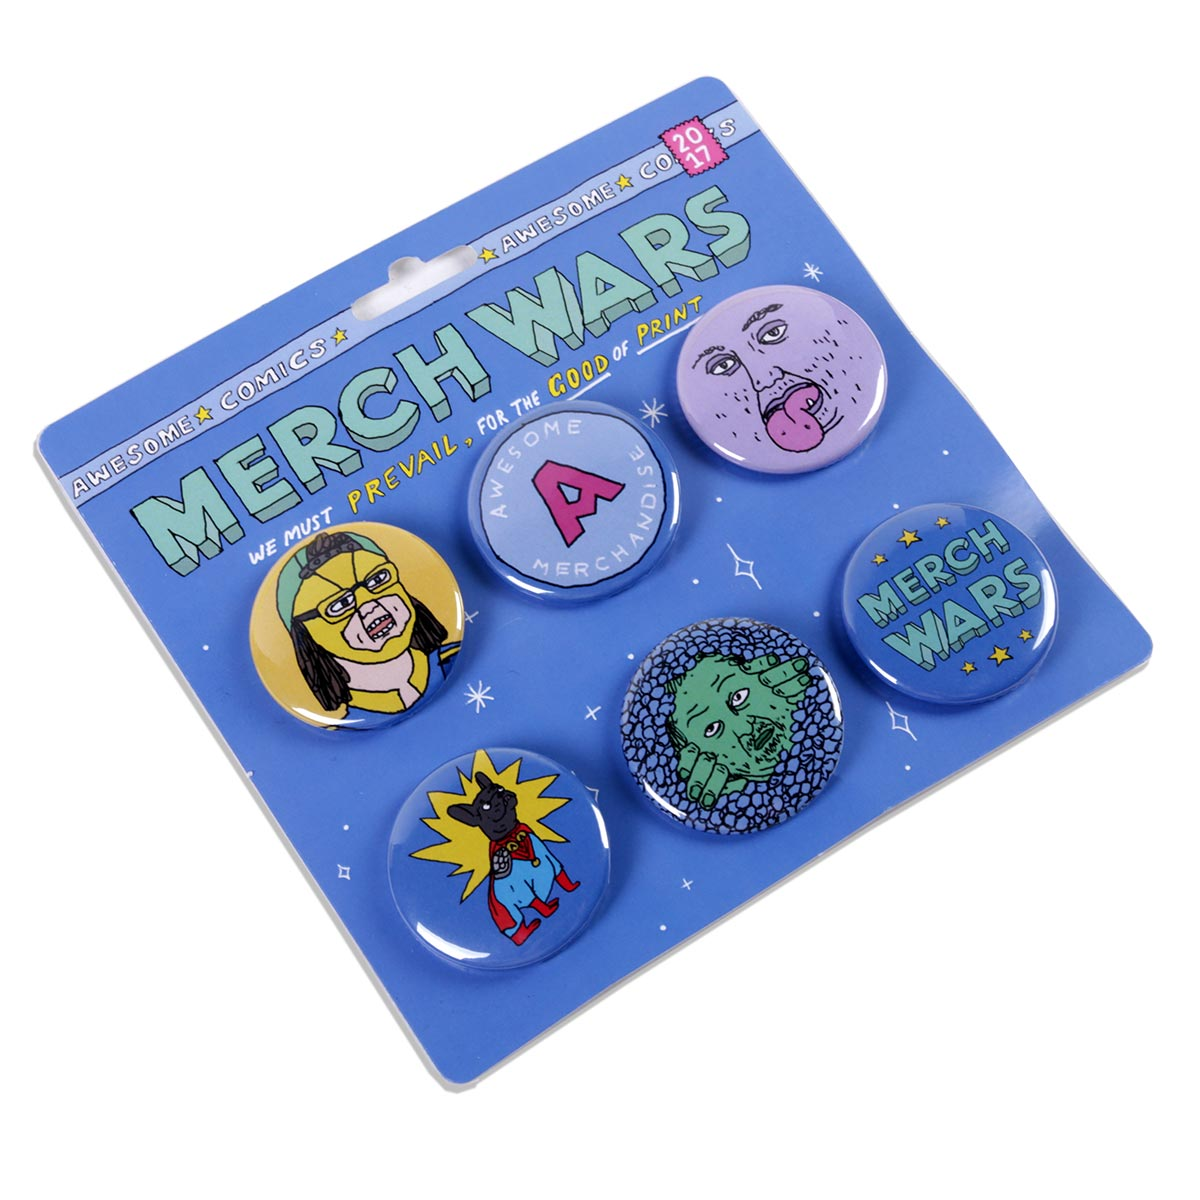 Six x 38mm Badge Packs